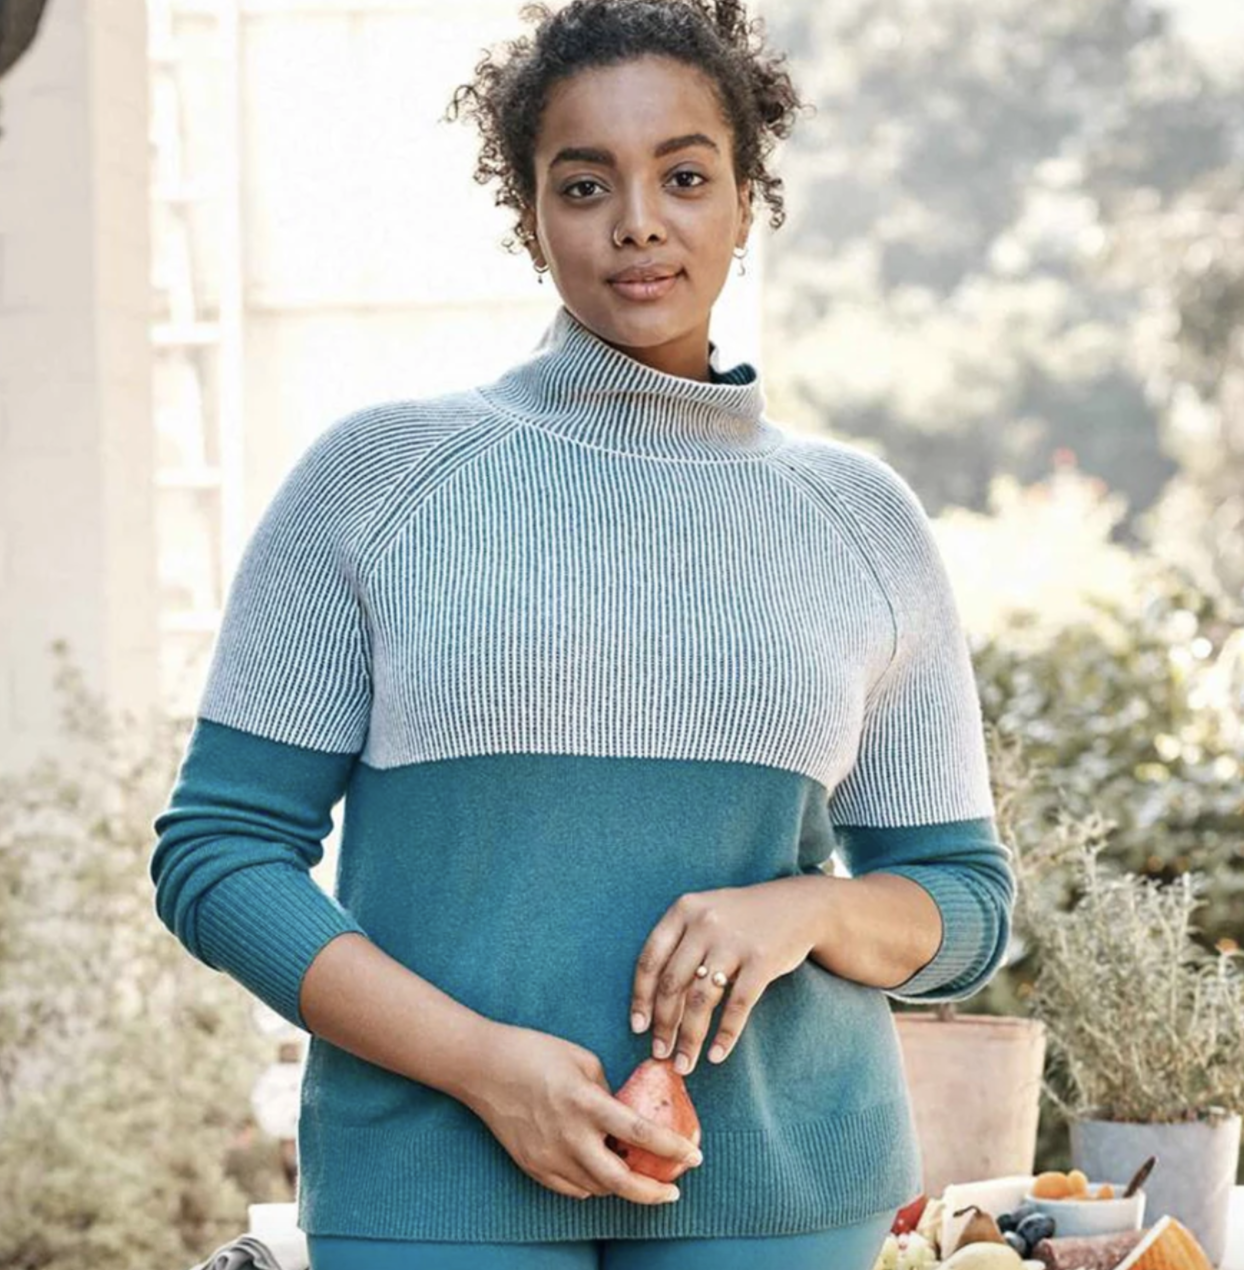 model wearing the blue sweater and striped top